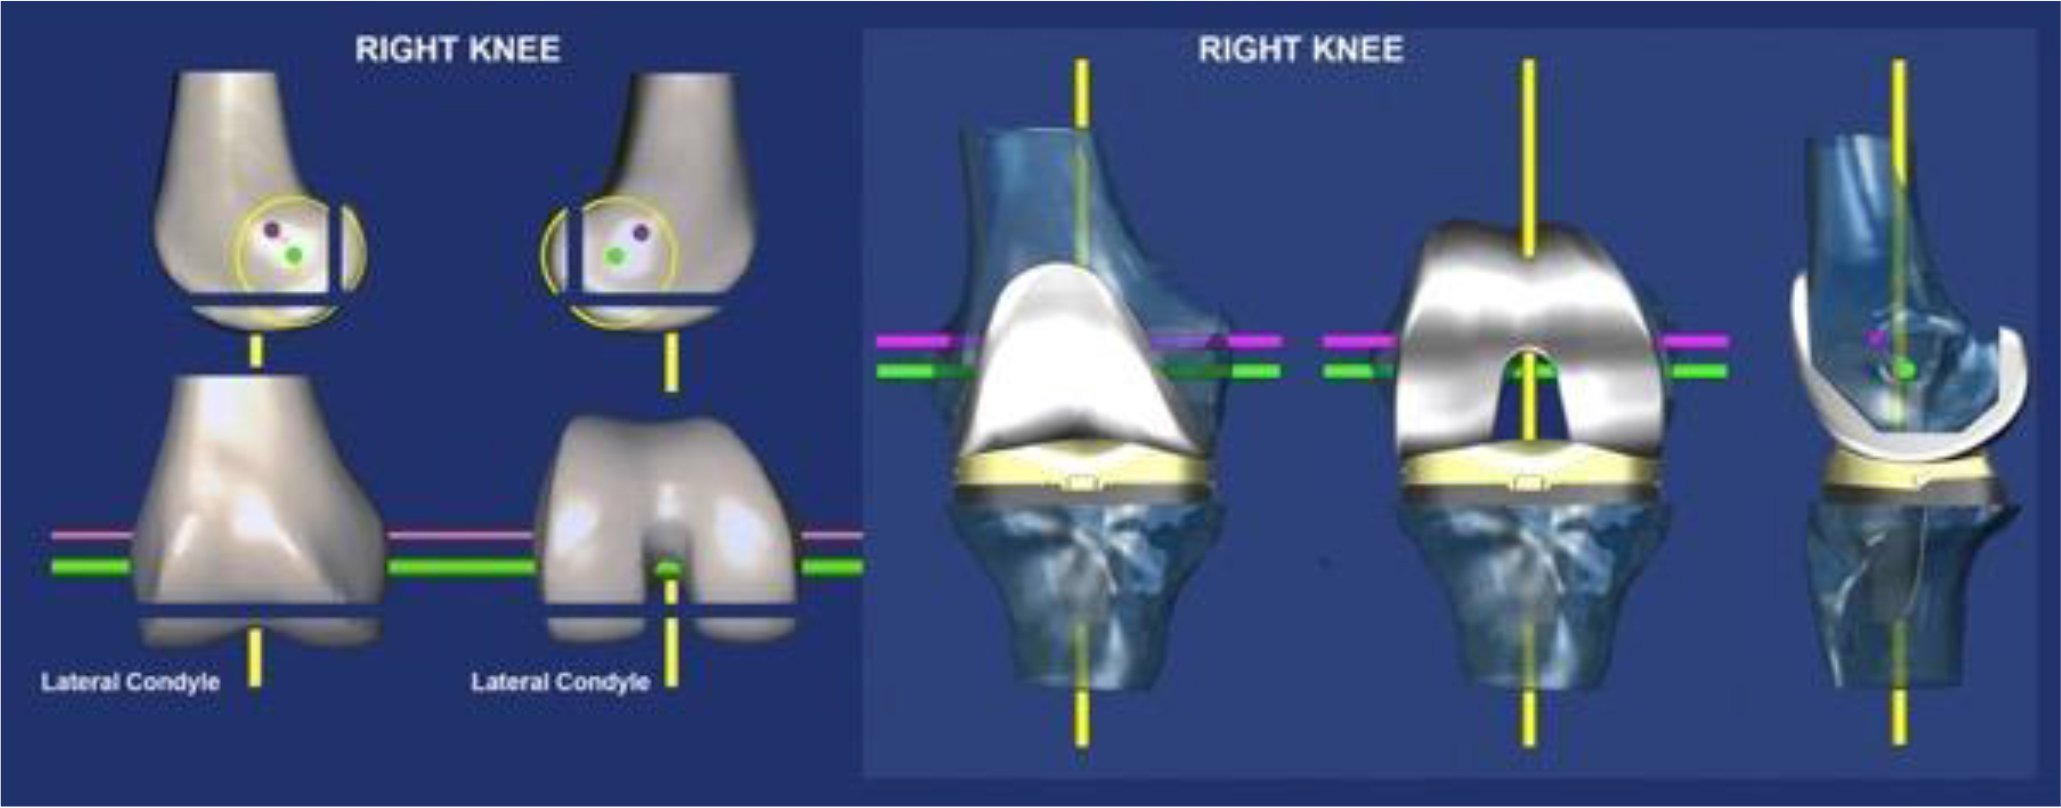 A right femur (left) and kinematically-aligned TKA (right) shows the parallel and perpendicular relationships between the three 'kinematic' axes of the knee, which from the anatomic basis for the philosophy of co-aligning the axes the components with those of the native knee s 42. The flexion-extension axis of the tibia is the green line, the flexion-extension axis of the patella is the magenta line, and the internal-external axis of the tibia is the yellow line. All three axes are closely parallel or perpendicular to the joint lines of the native knee. Resecting bone from the distal and posterior femur condyles equal in thickness to the condyles of the femoral component after compensating for 2 mm of cartilage wear and 1 mm kerf of the saw cut sets the femoral component coincident to the native joint lines and co-aligns the axes.